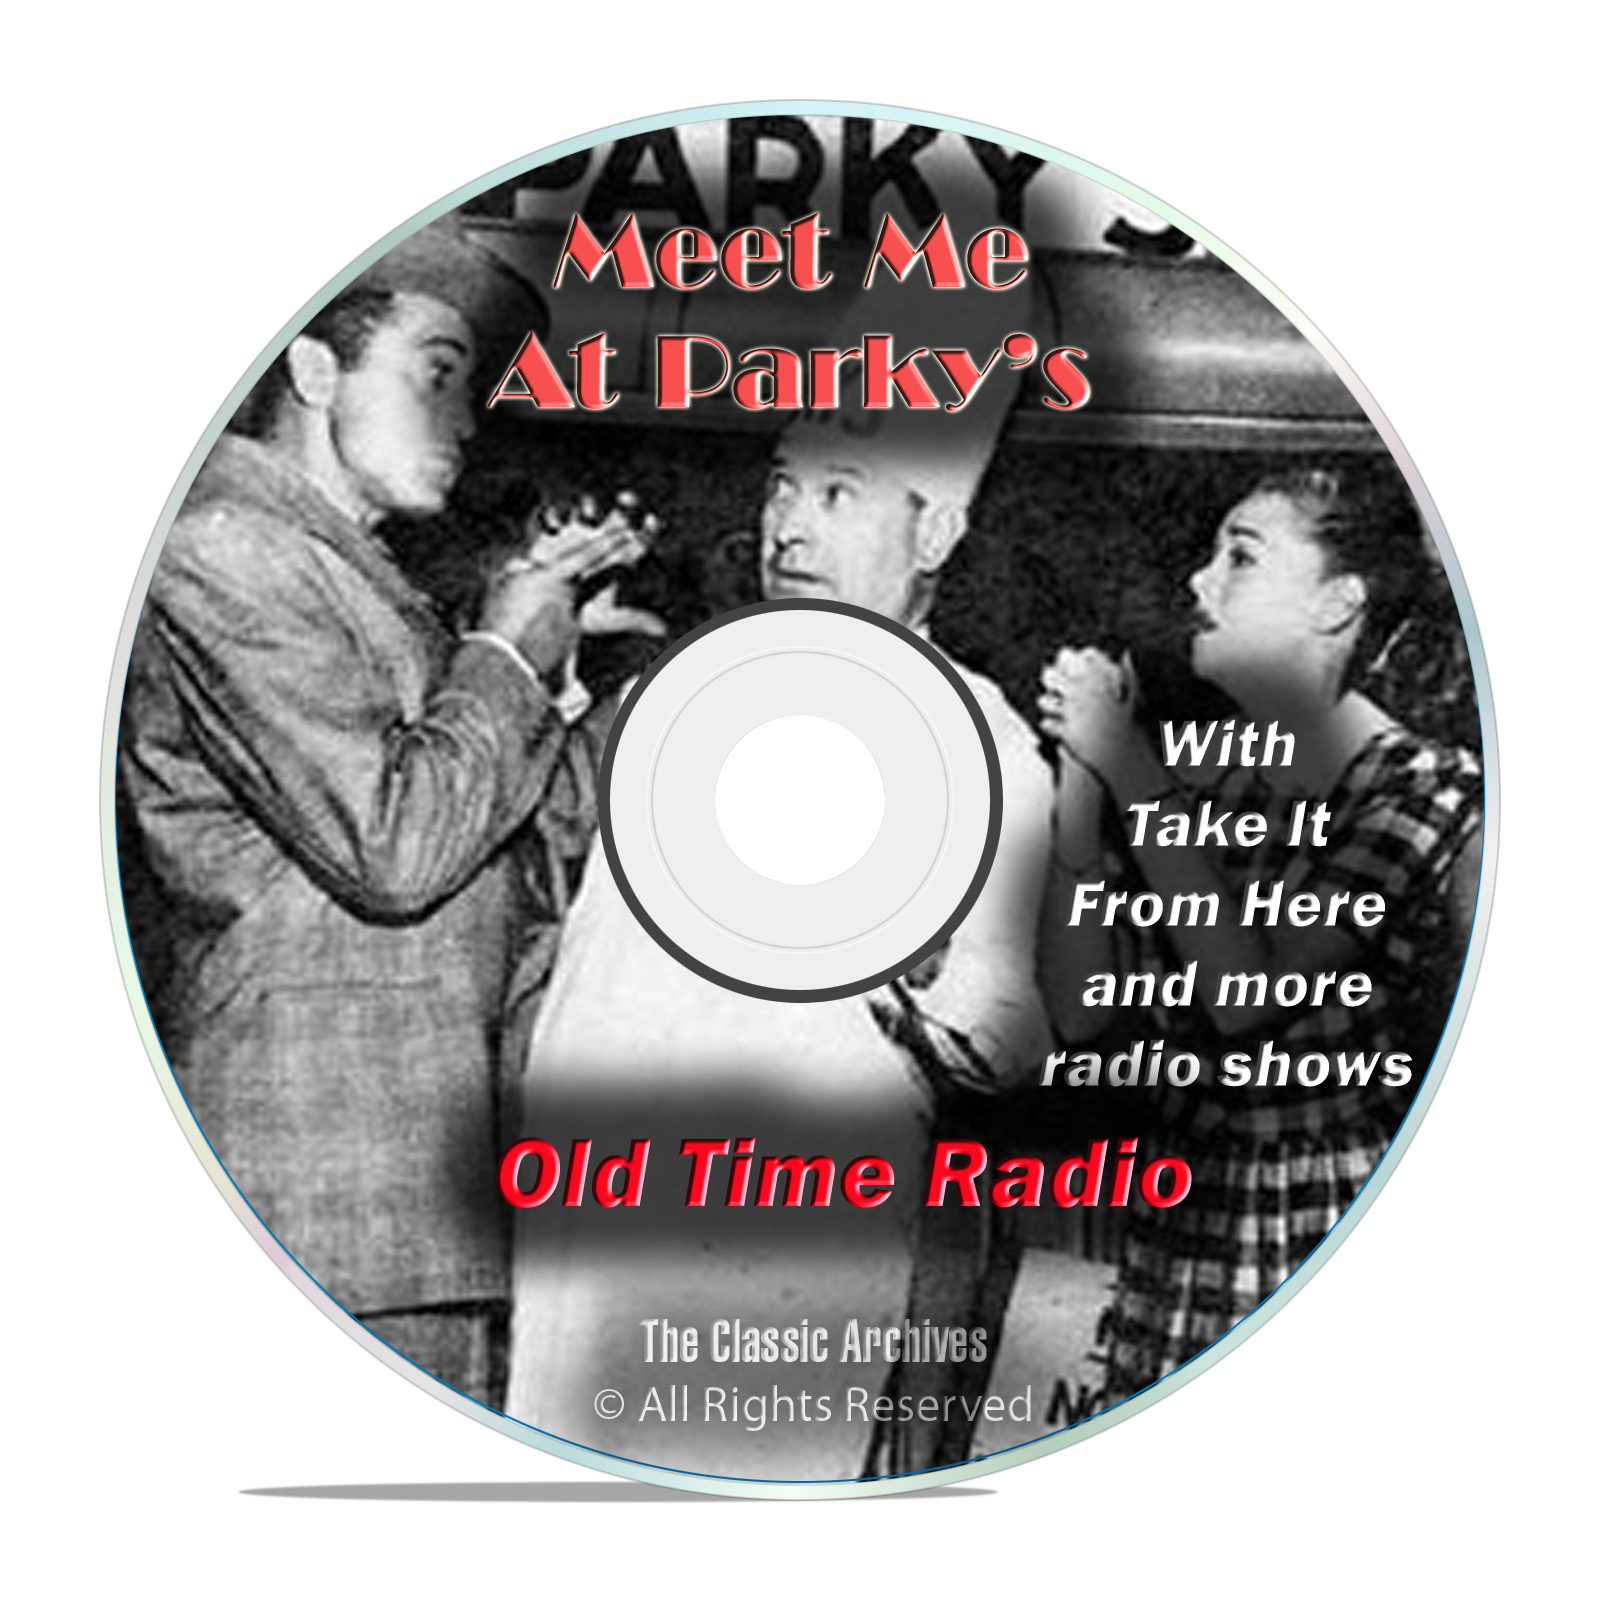 Meet Me At Parky's, 640 Old Time Radio Sitcom Comedy Shows mp3 DVD